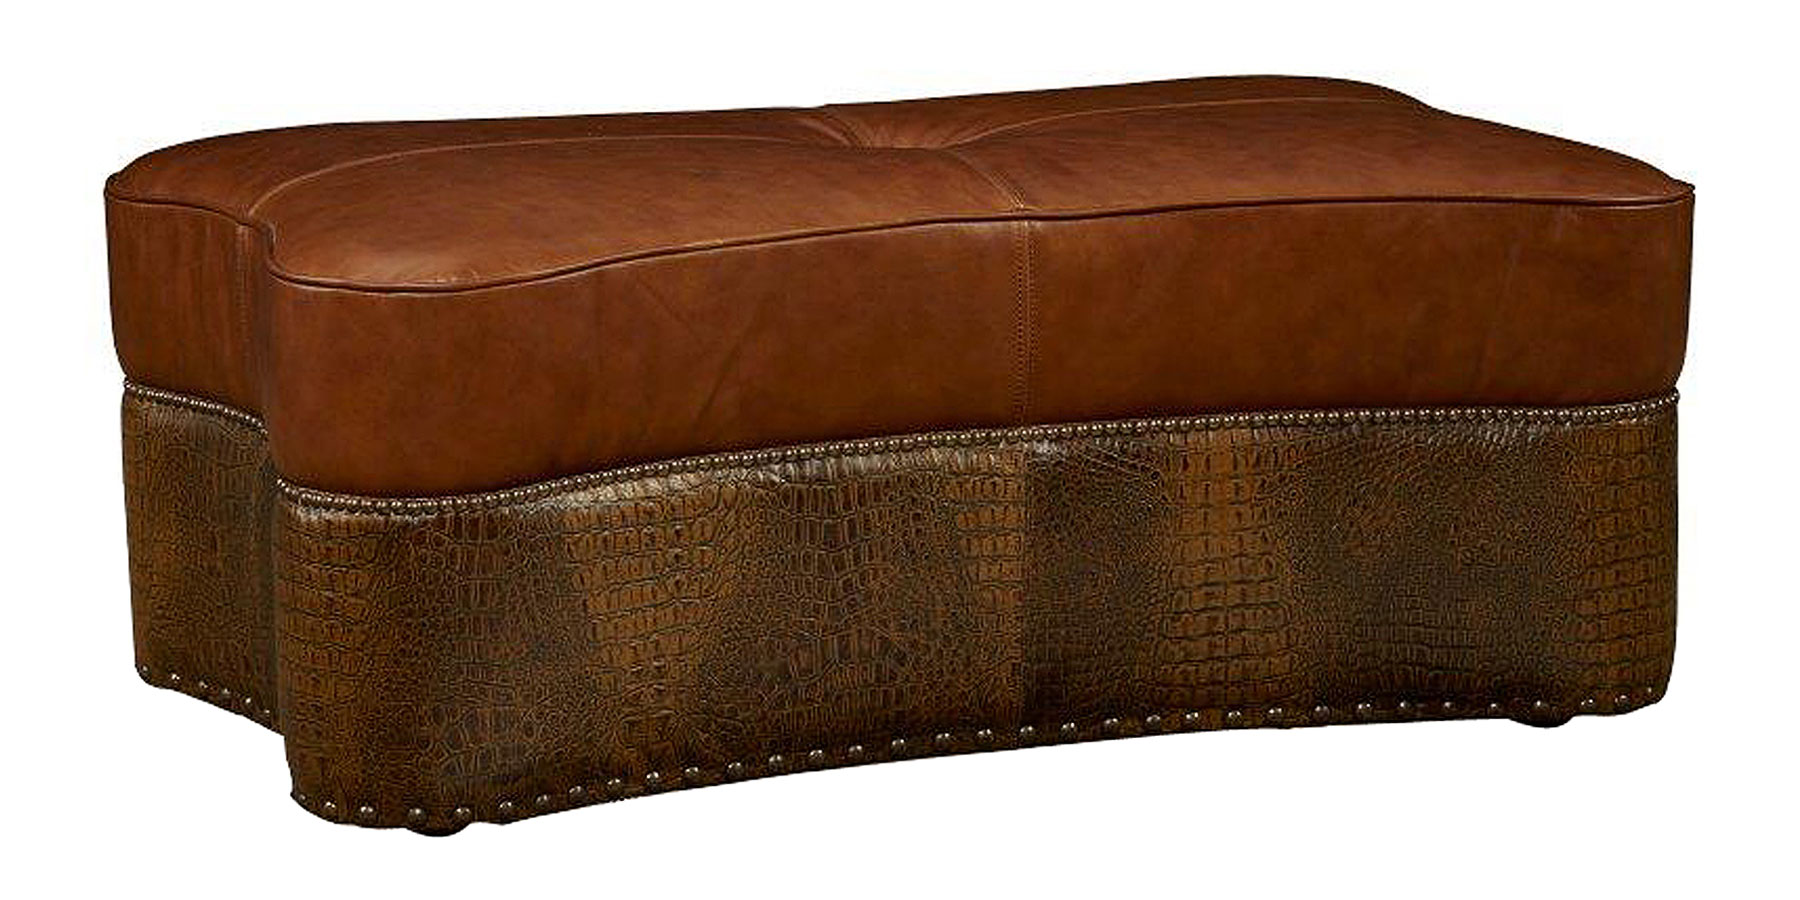 Tobias quick ship two tone leather coffee table ottoman ottomans benches Ottoman bench coffee table